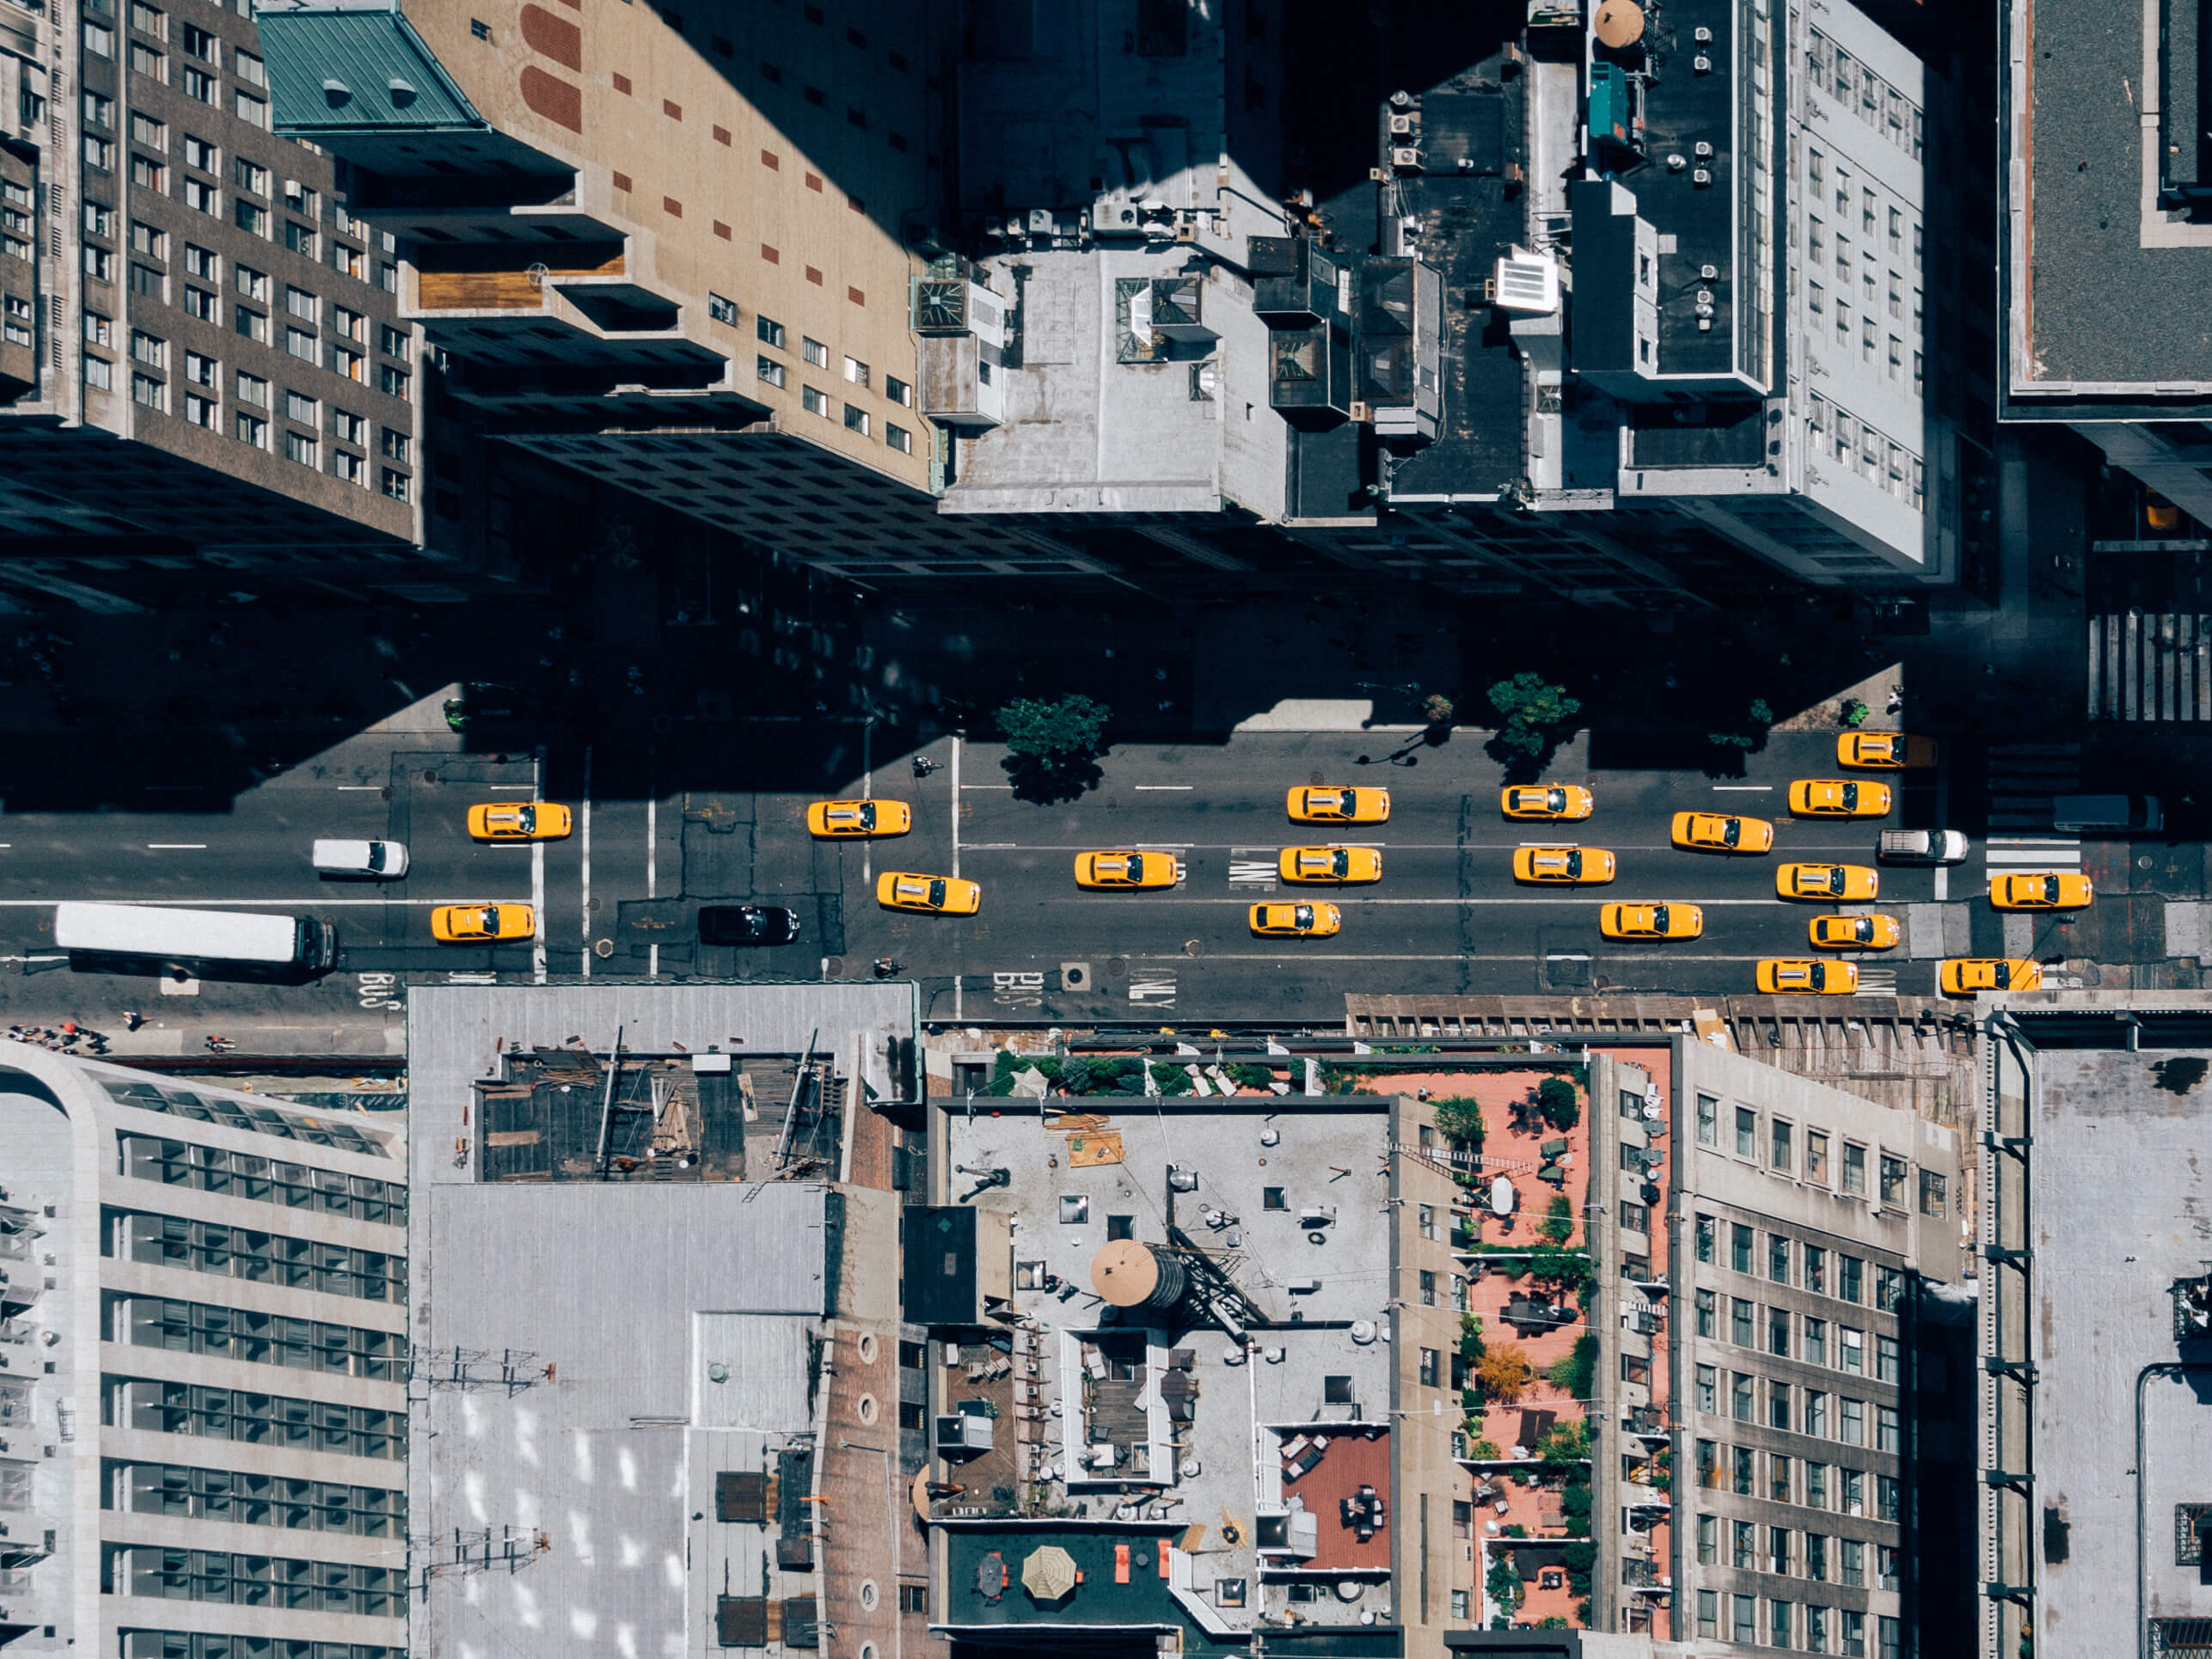 Top-down view of taxi cabs on city street